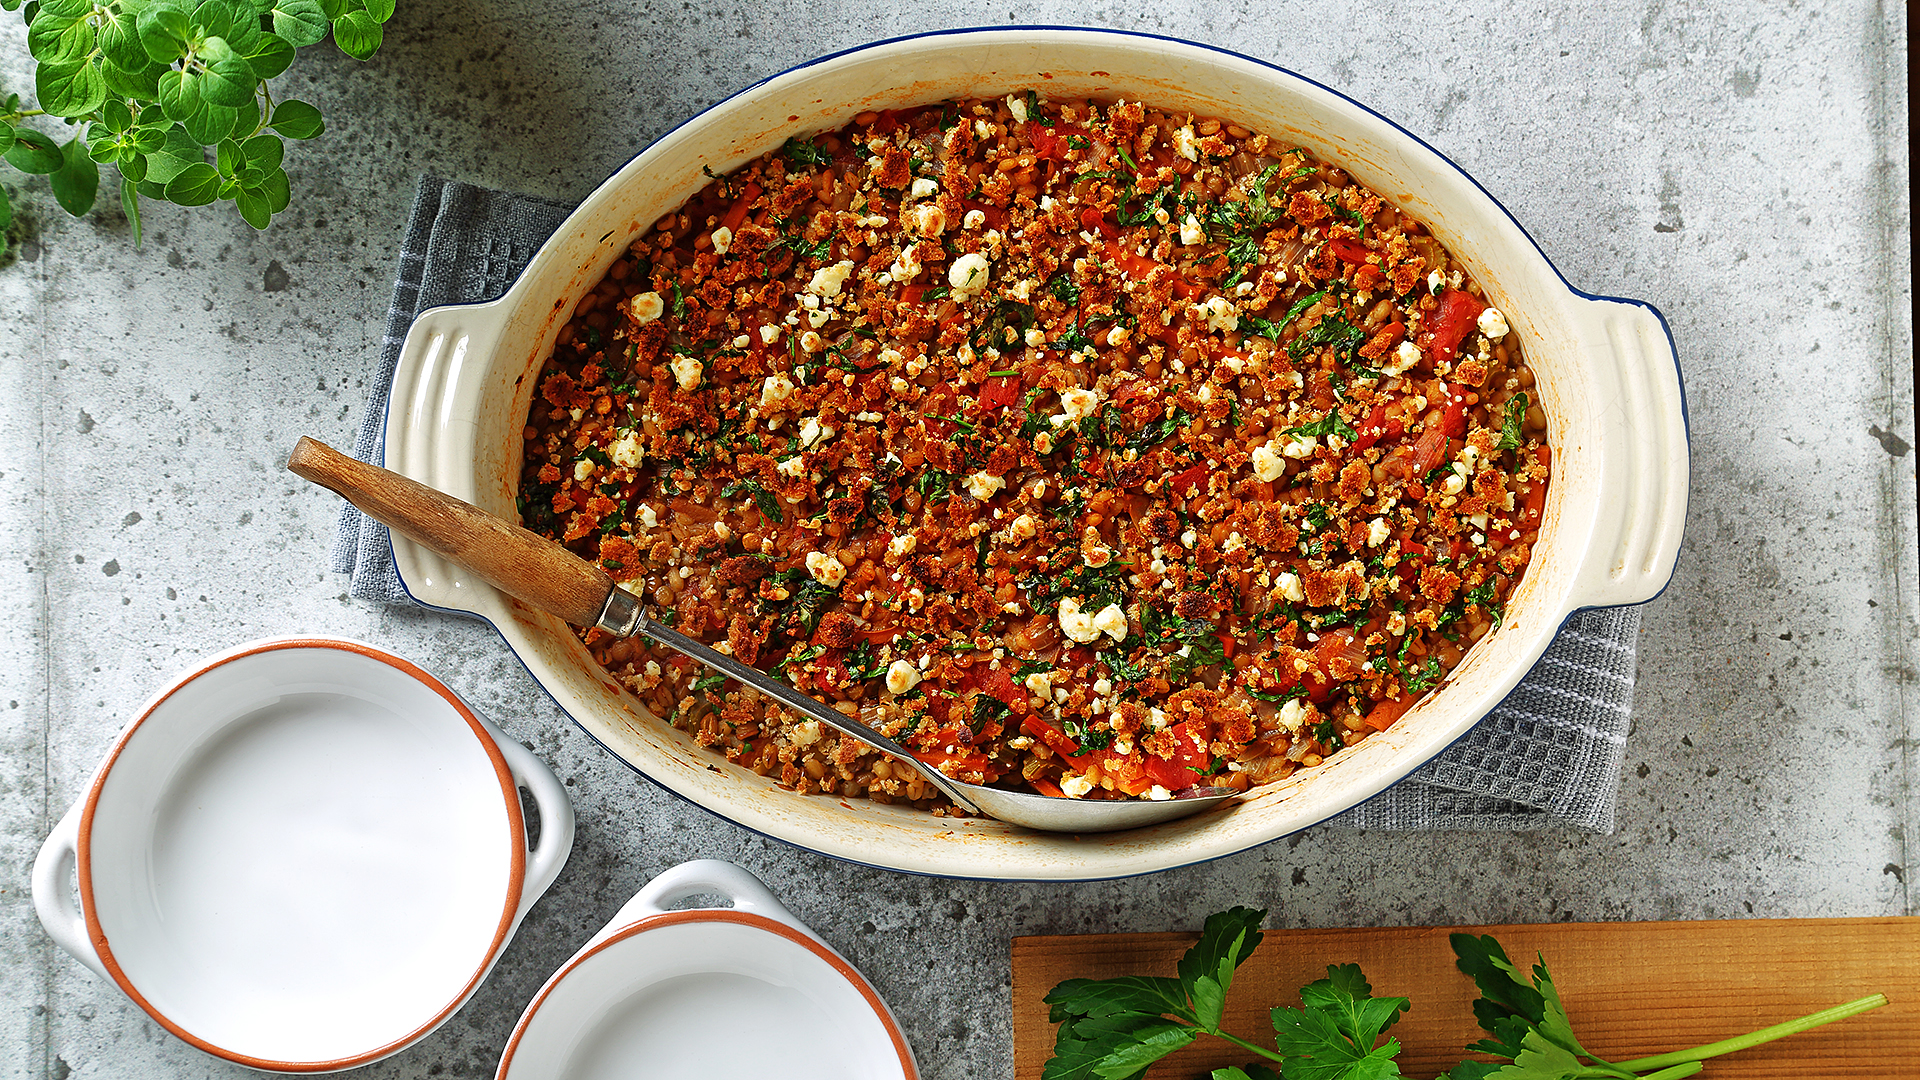 Lentil and barley oven bake casserole in ceramic serving dish with a serving spoon and two empty bowls.